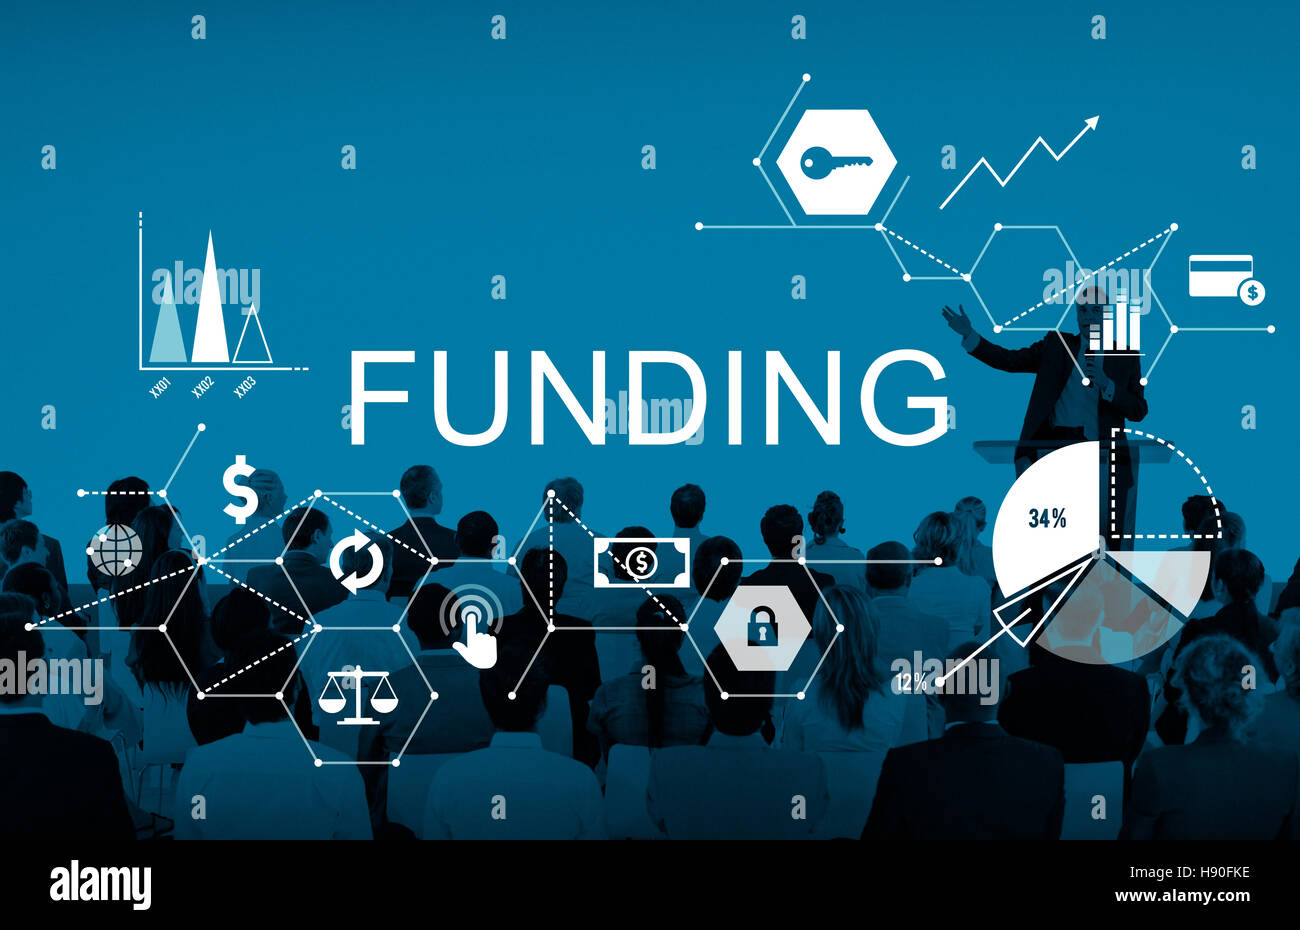 Funding Invest Financial Money Budget Concept - Stock Image